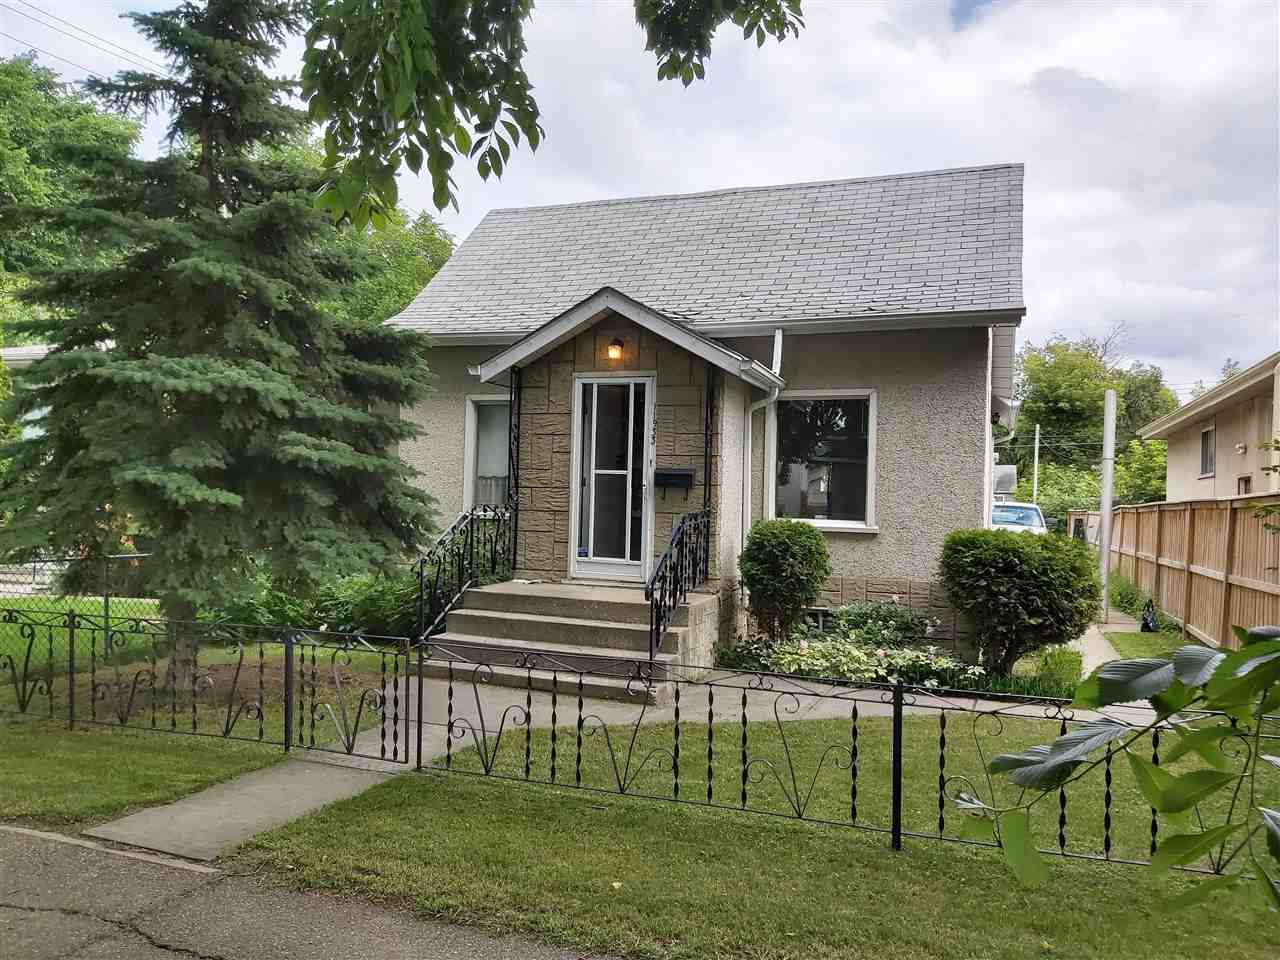 Great investment property just a few steps away from downtown, Kingsway mall, Delton park, community center and a simple walk to NAIT. All the main sewer lines have been changed in the neighborhood. New roads and sidewalks are in the process of being re done. Quiet neighborhood with in walking distance to vibrant market places and recreation areas.